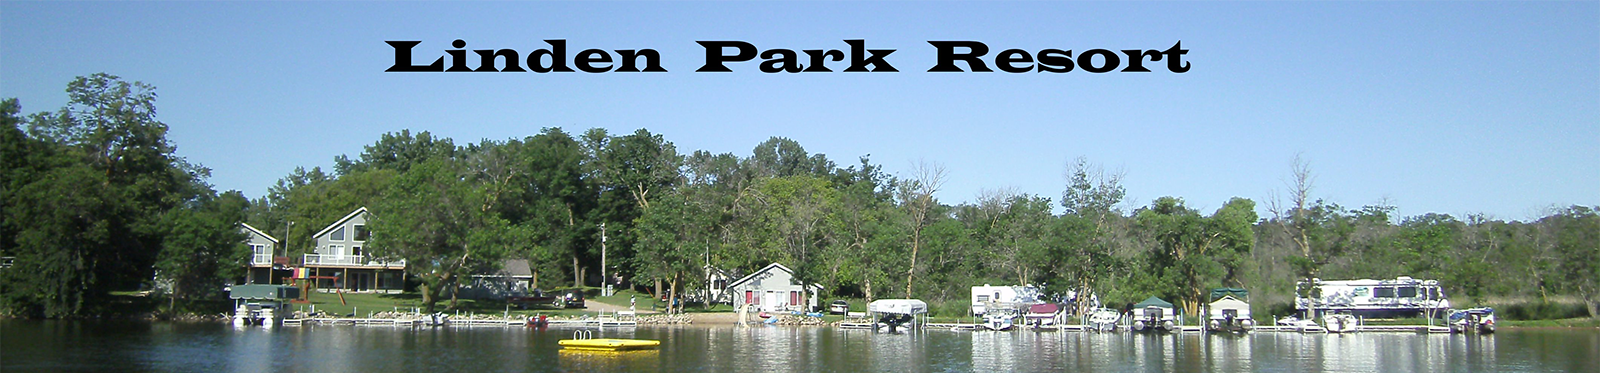 Linden Park Resort - East Battle Lake MN